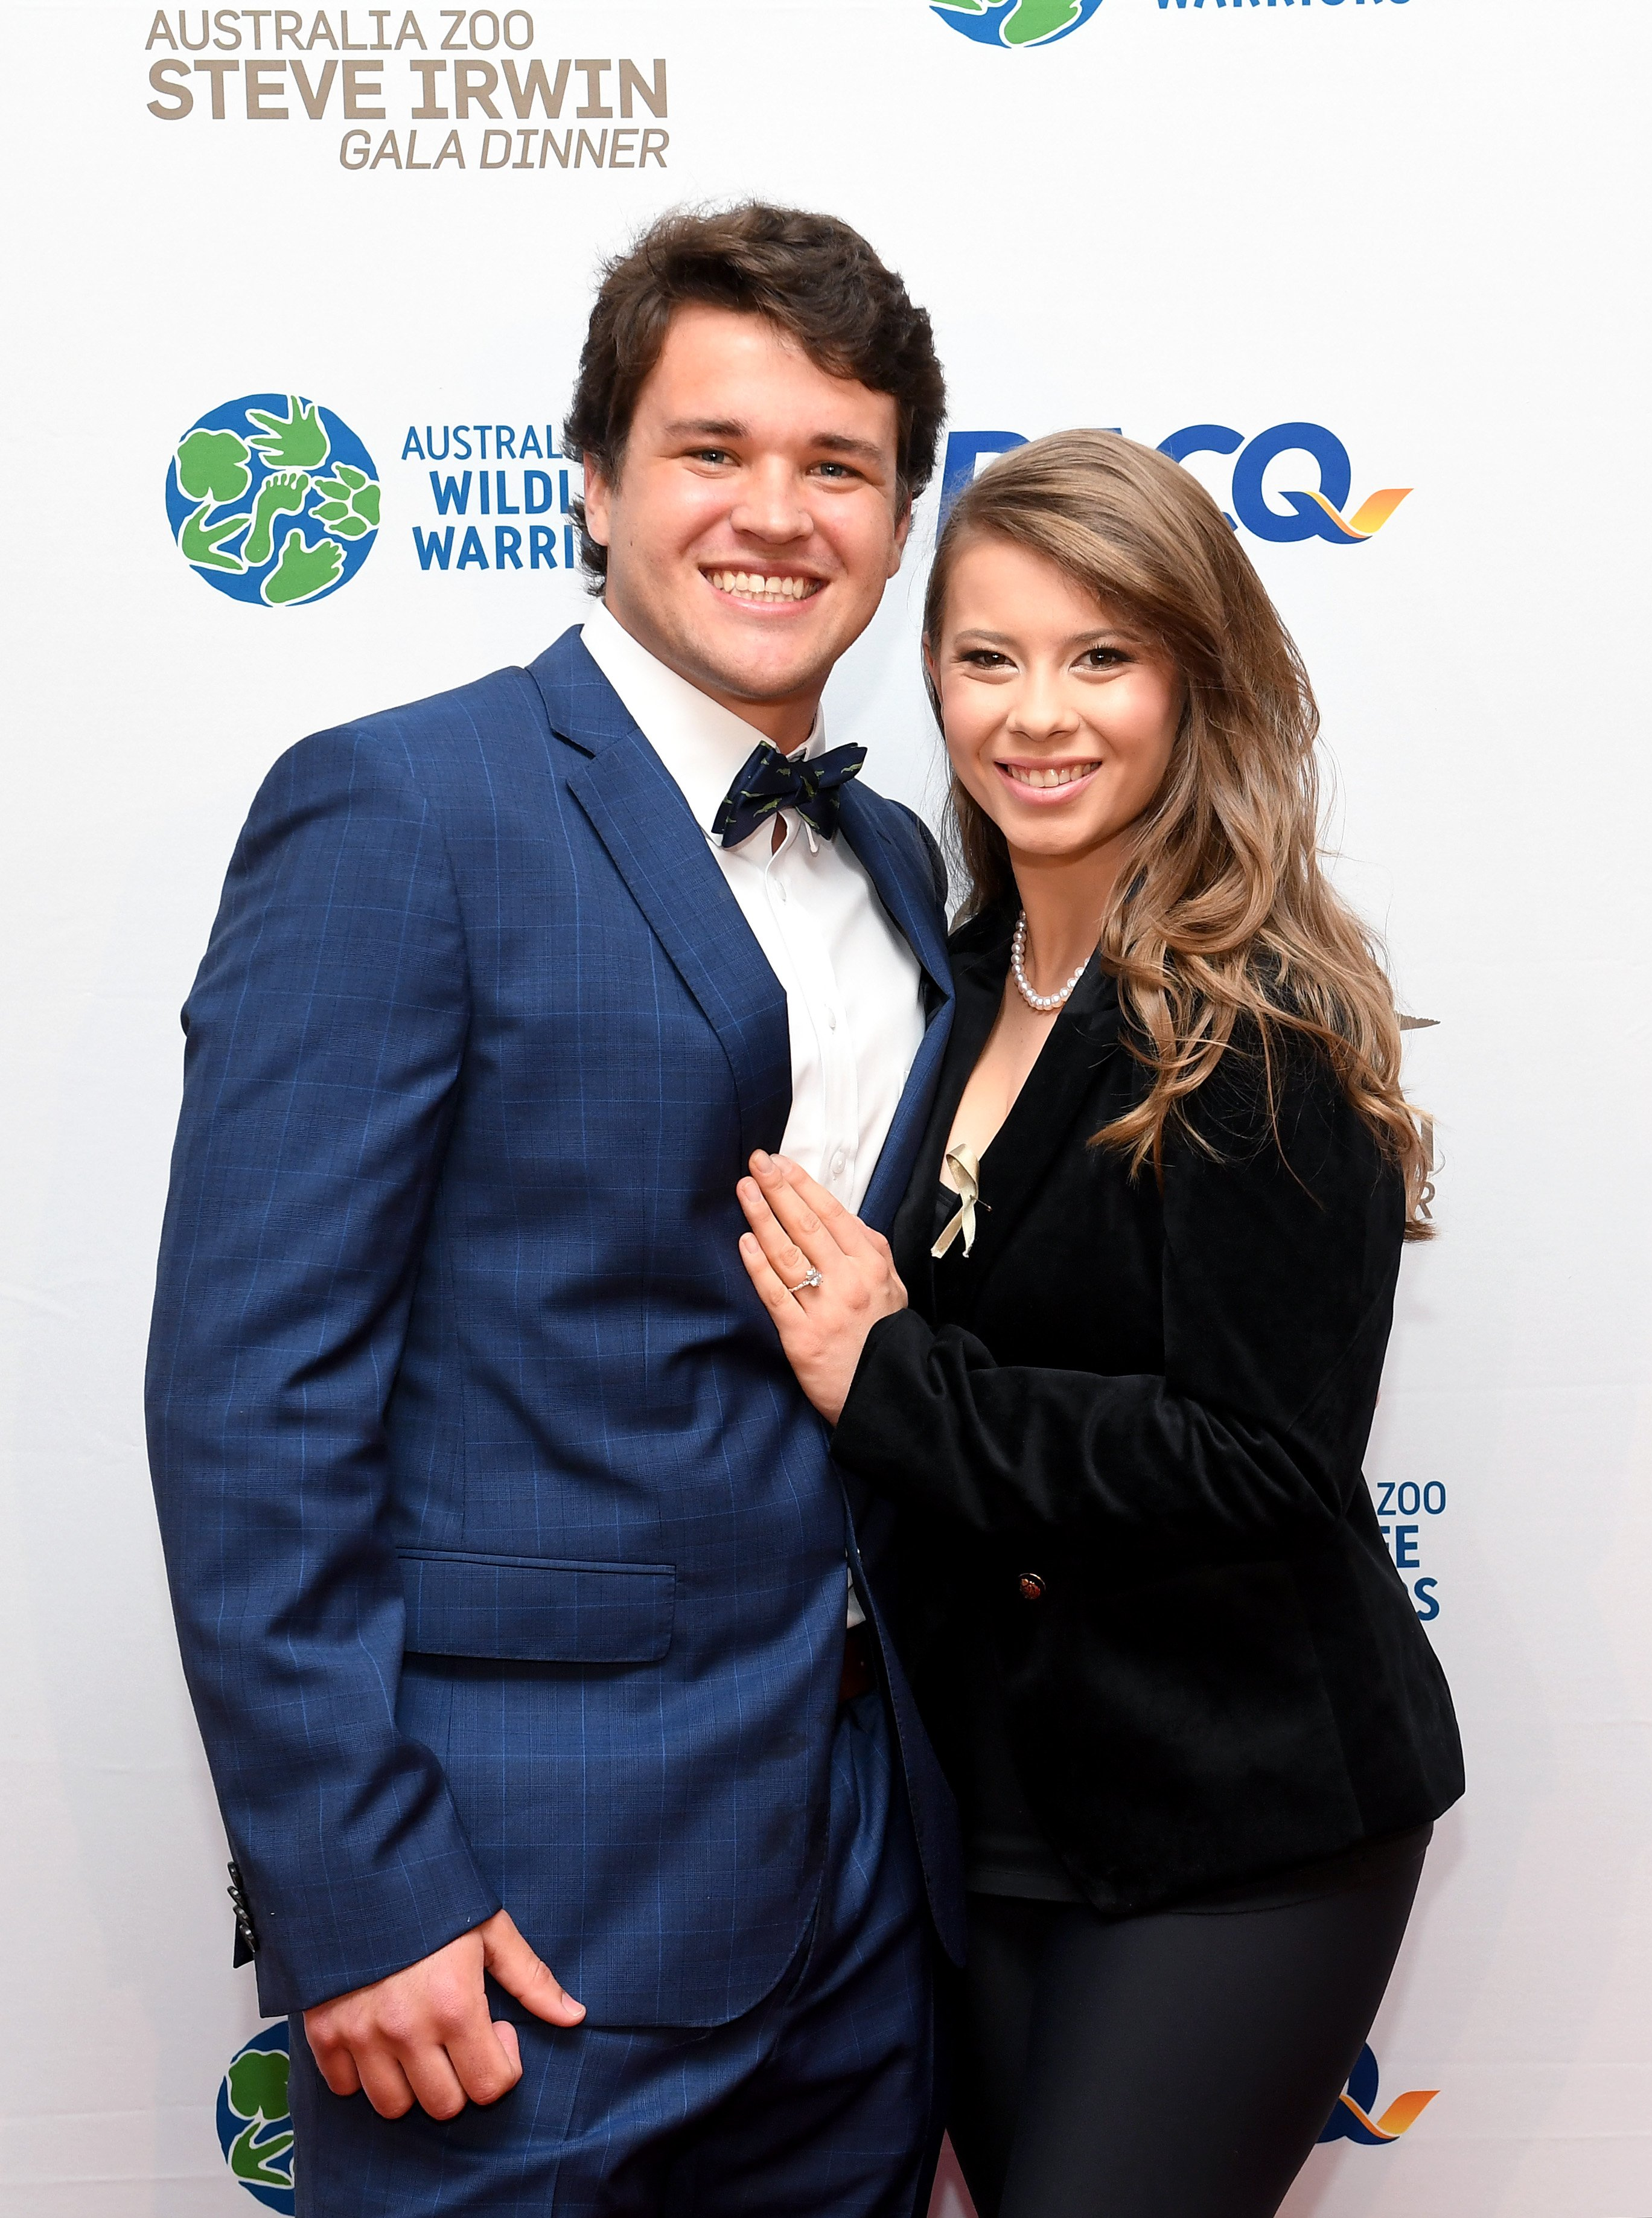 Bindi Irwin  with now-husband Chandler Powell at the annual Steve Irwin Gala Dinner at Brisbane Convention & Exhibition Centre on November 09, 2019 in Brisbane, Australia.   Source: Getty Images